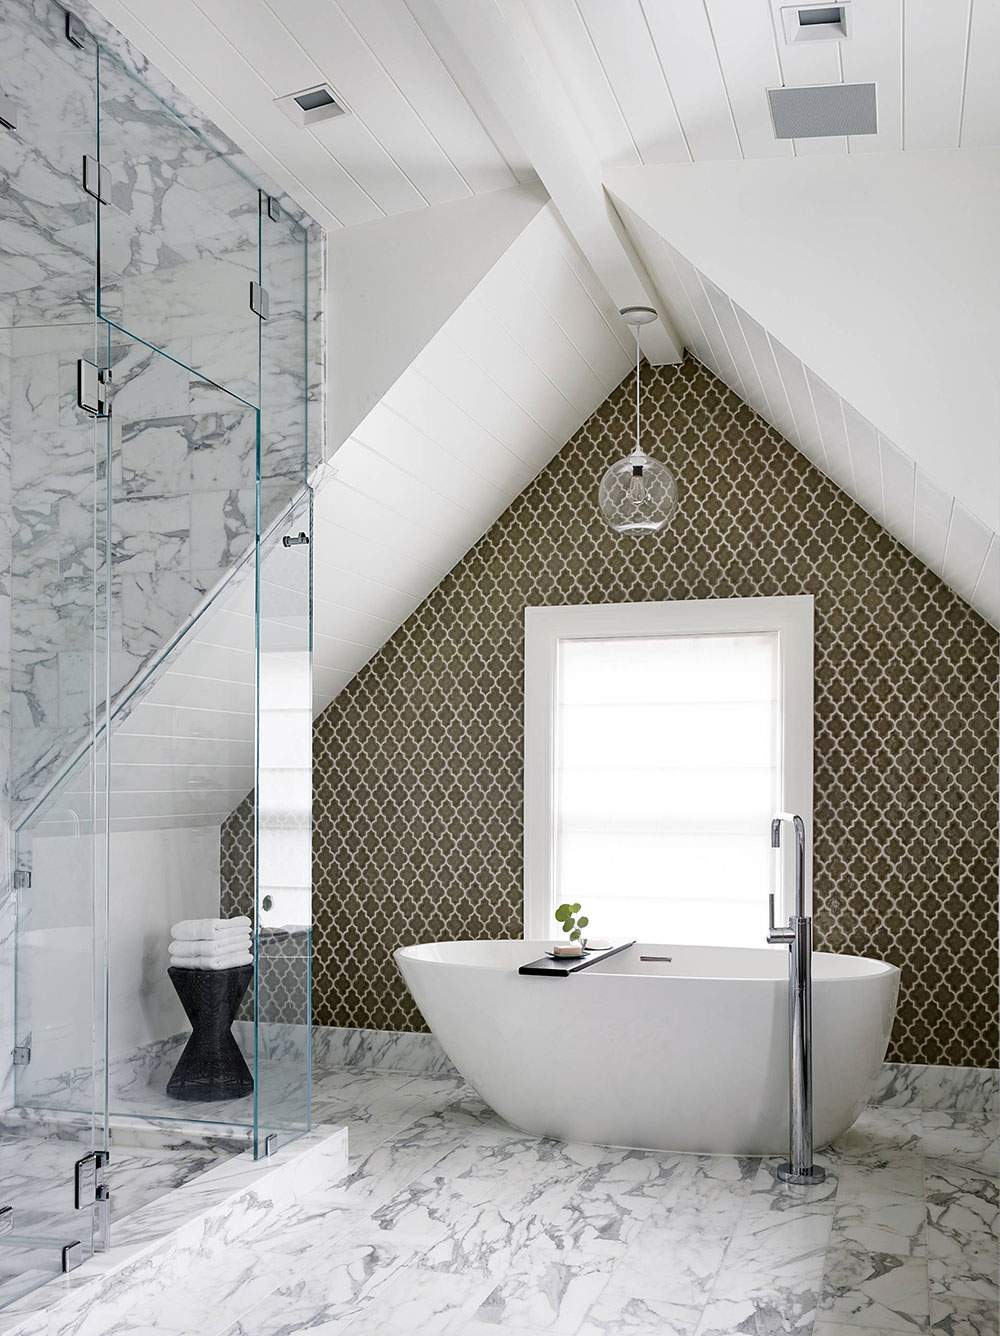 How To Choose The Right Bathtub14 How To Choose The Right